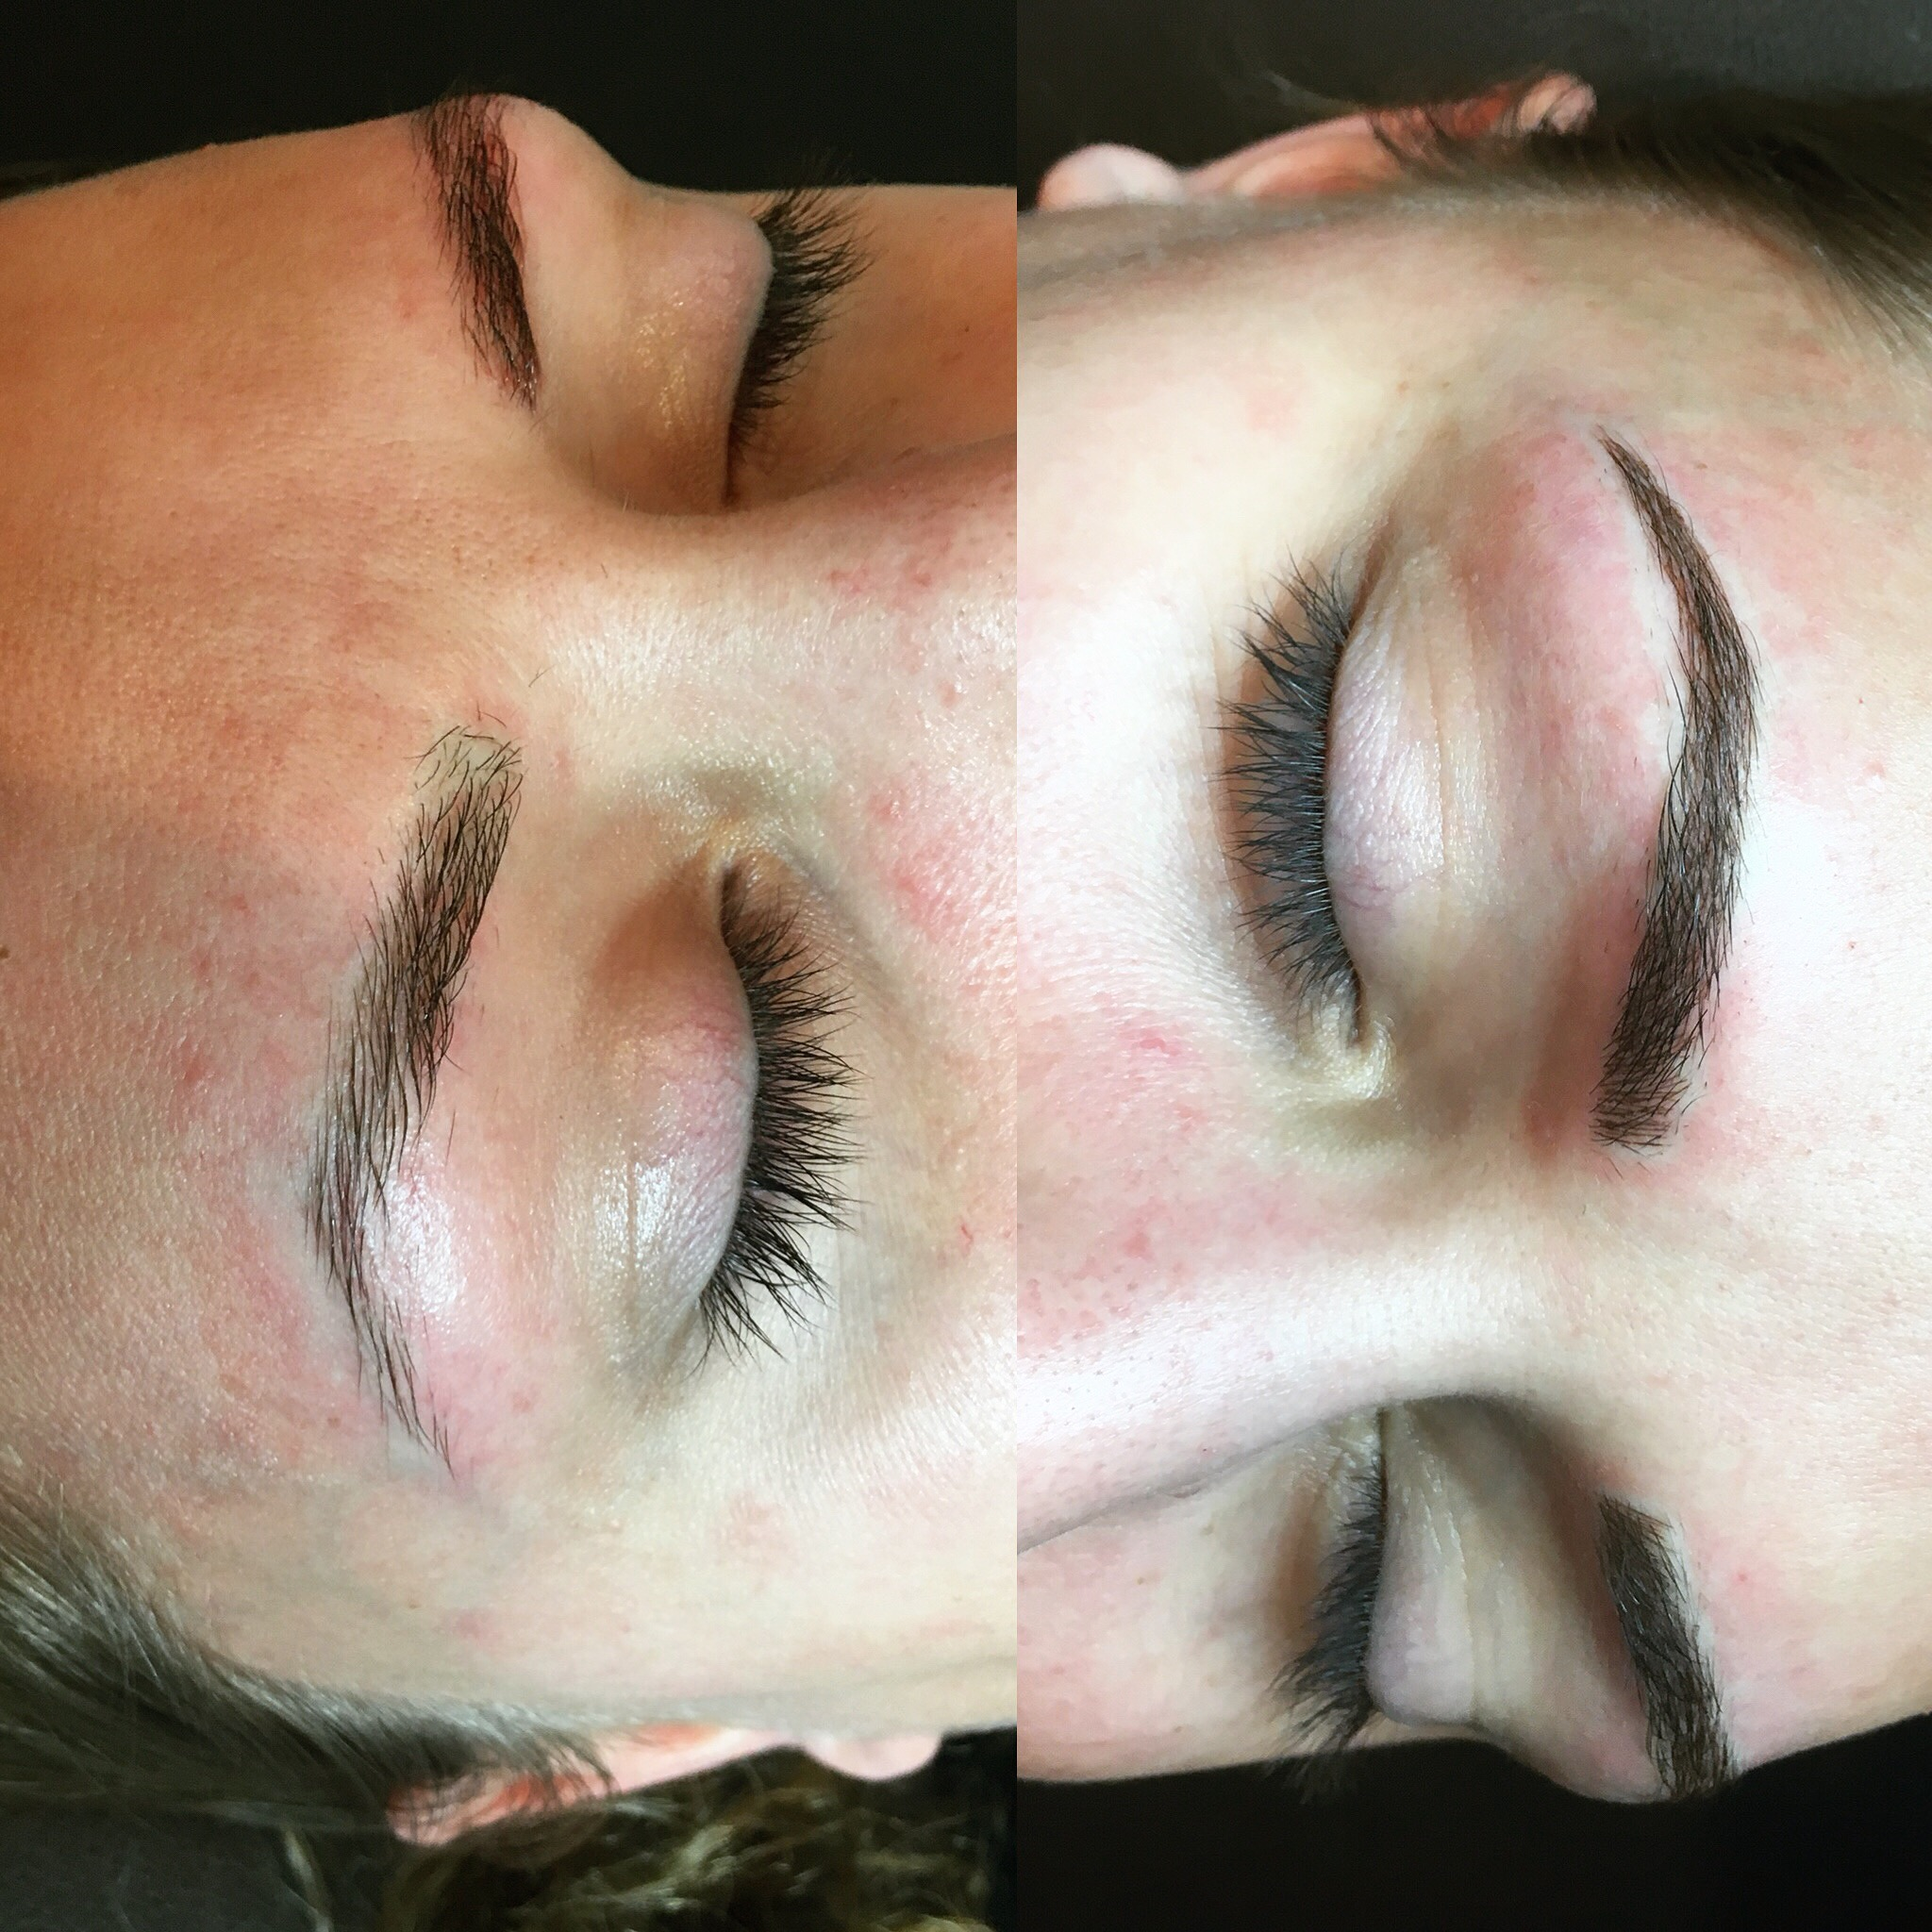 """""""I've been curious about microblading for a long time but never took the time to get them done. Sabrina gave me the best first microblading experience I could've imagined having. She took the time to really look at the structure my eyebrows and complemented the features I already had. She made sure I was comfortable throughout the entire process. I was in a rush to get my eyebrows done before my birthday and Sabrina made sure to accommodate me as with that as much as possible. Highly recommend!"""""""